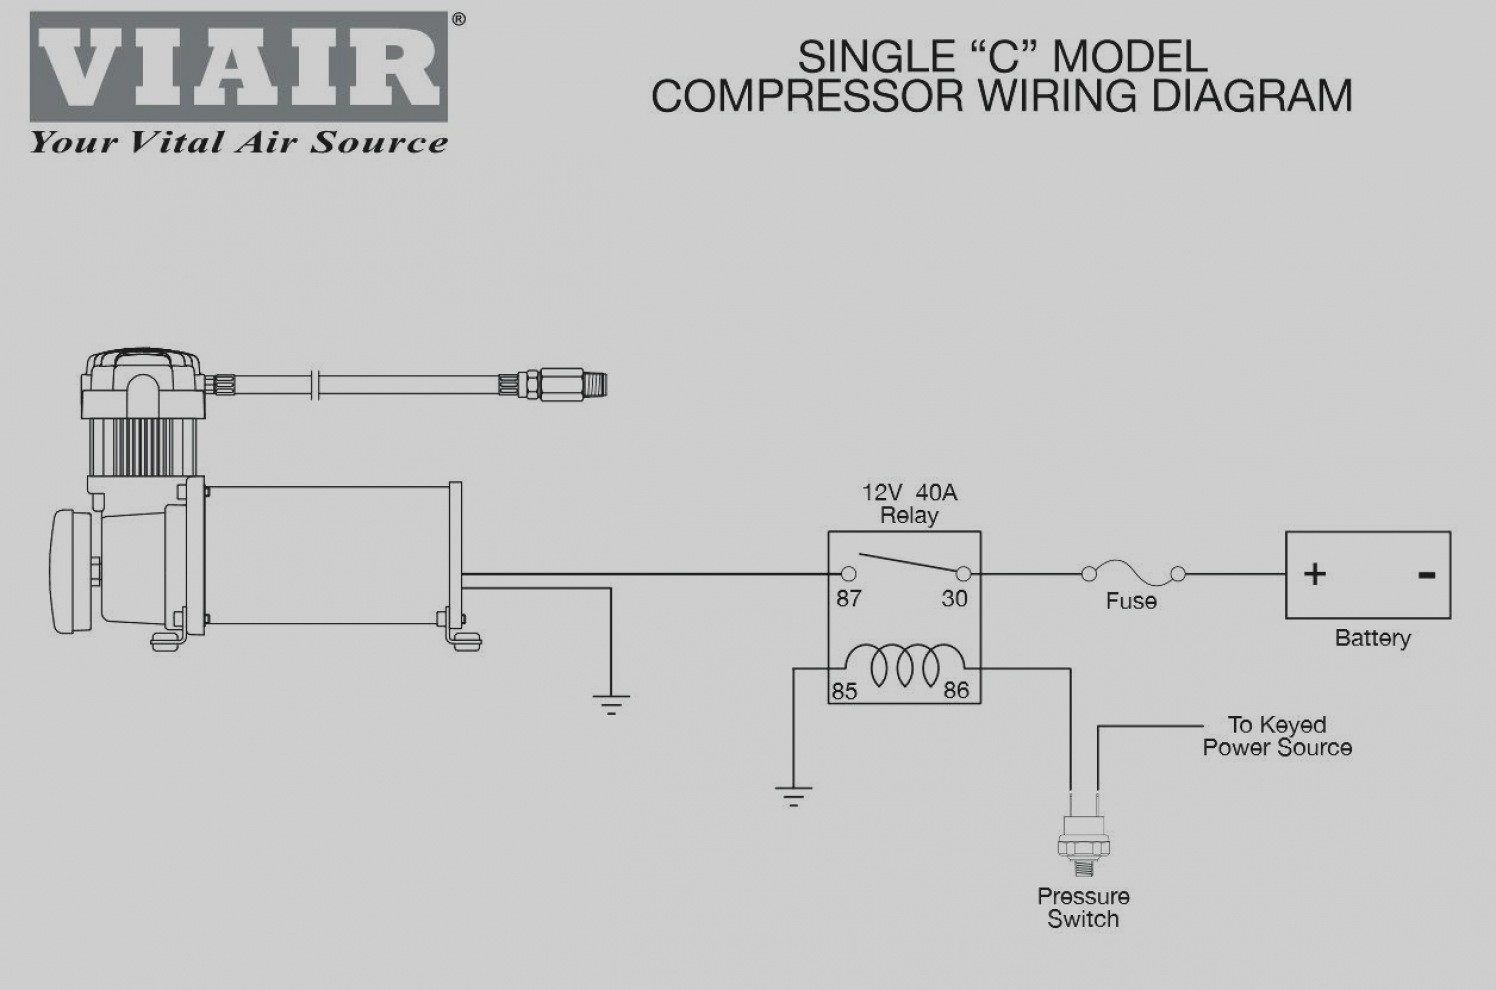 horn wiring diagram air pressure wiring diagram datahorn wiring diagram air pressure wiring diagram g11 air horn wiring images frompo schematic diagram download